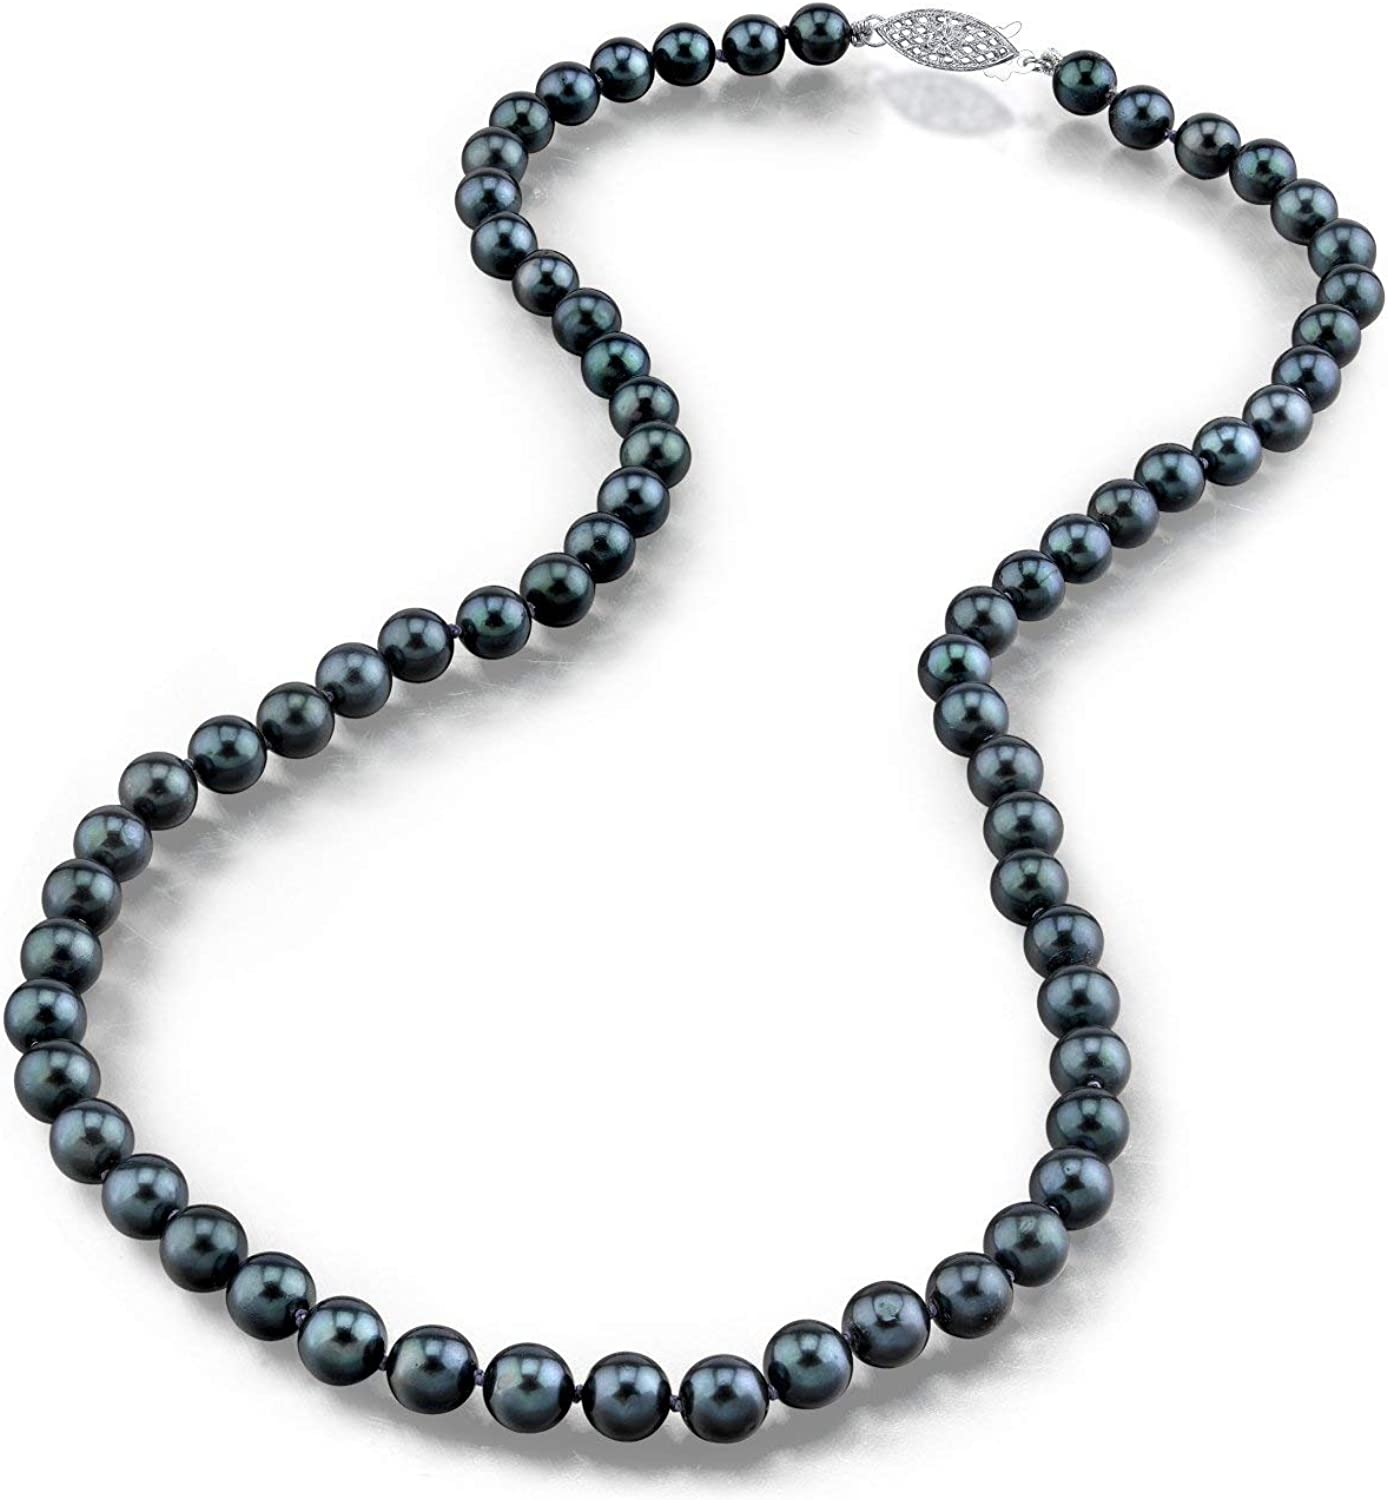 THE PEARL SOURCE 14K Gold 6.5-7.0mm Round Genuine Black Japanese Akoya Saltwater Cultured Pearl Necklace in 16